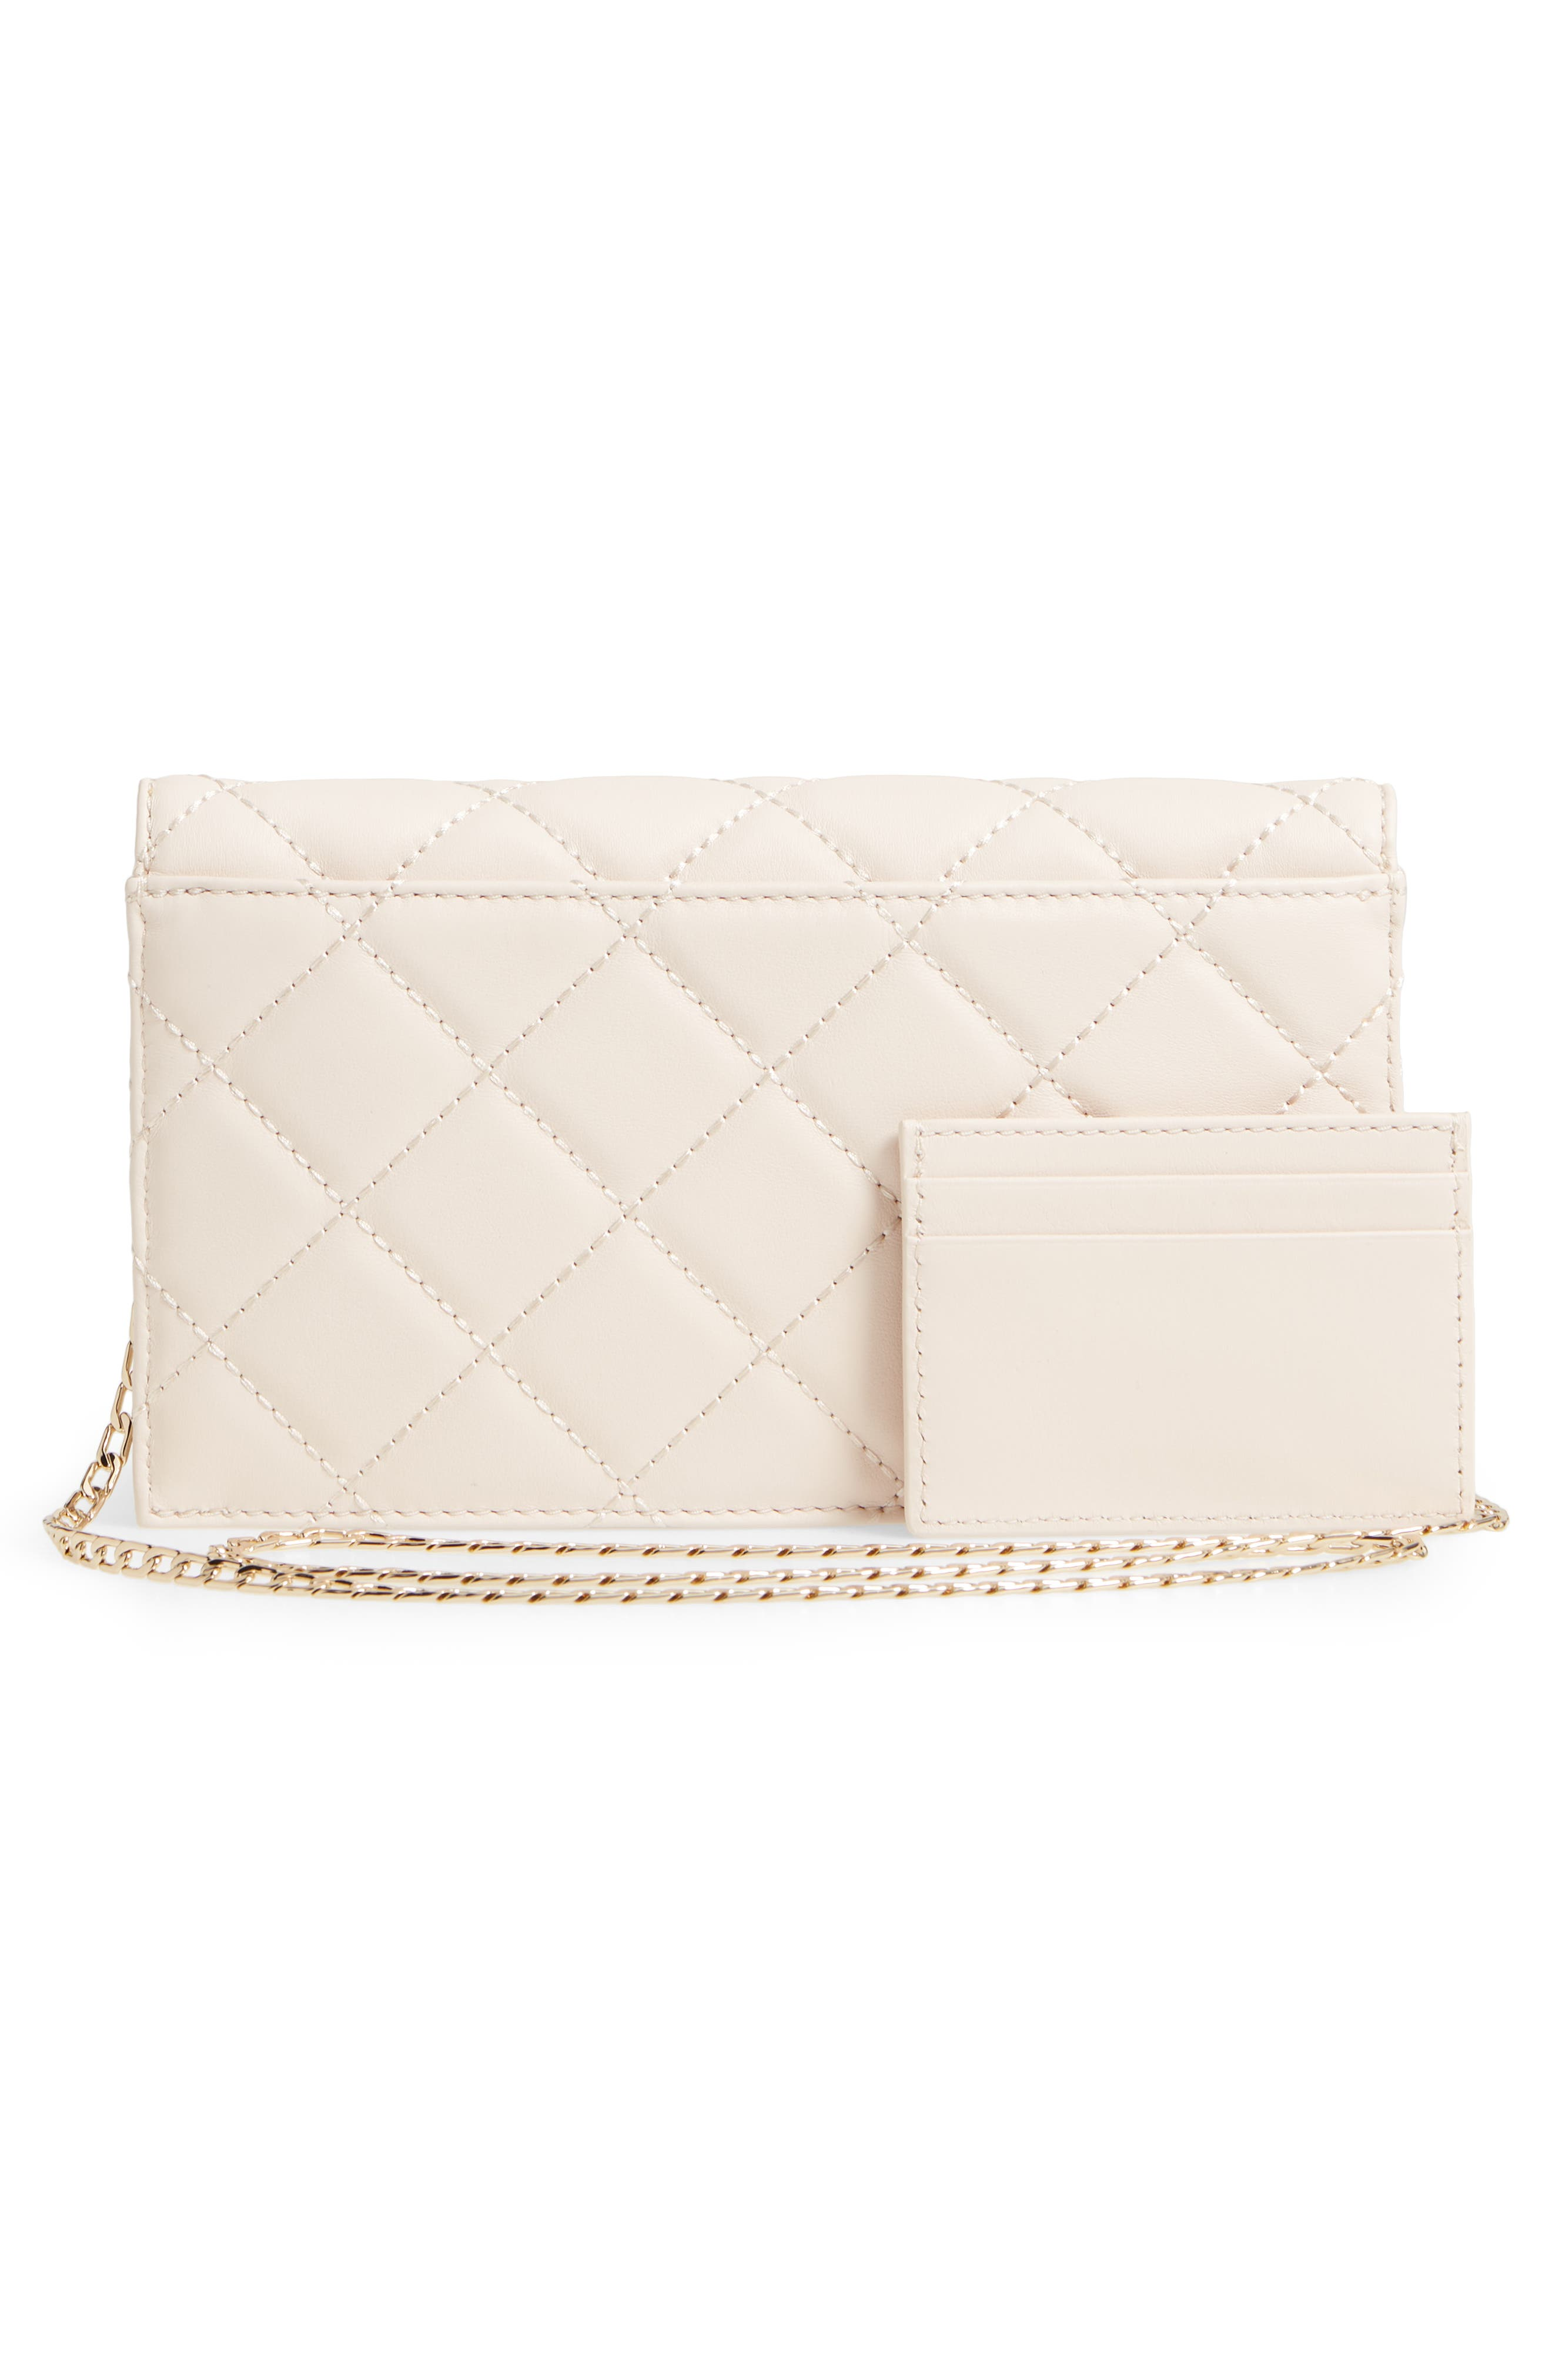 emerson place - brennan quilted leather,                             Alternate thumbnail 3, color,                             Bleach Bone